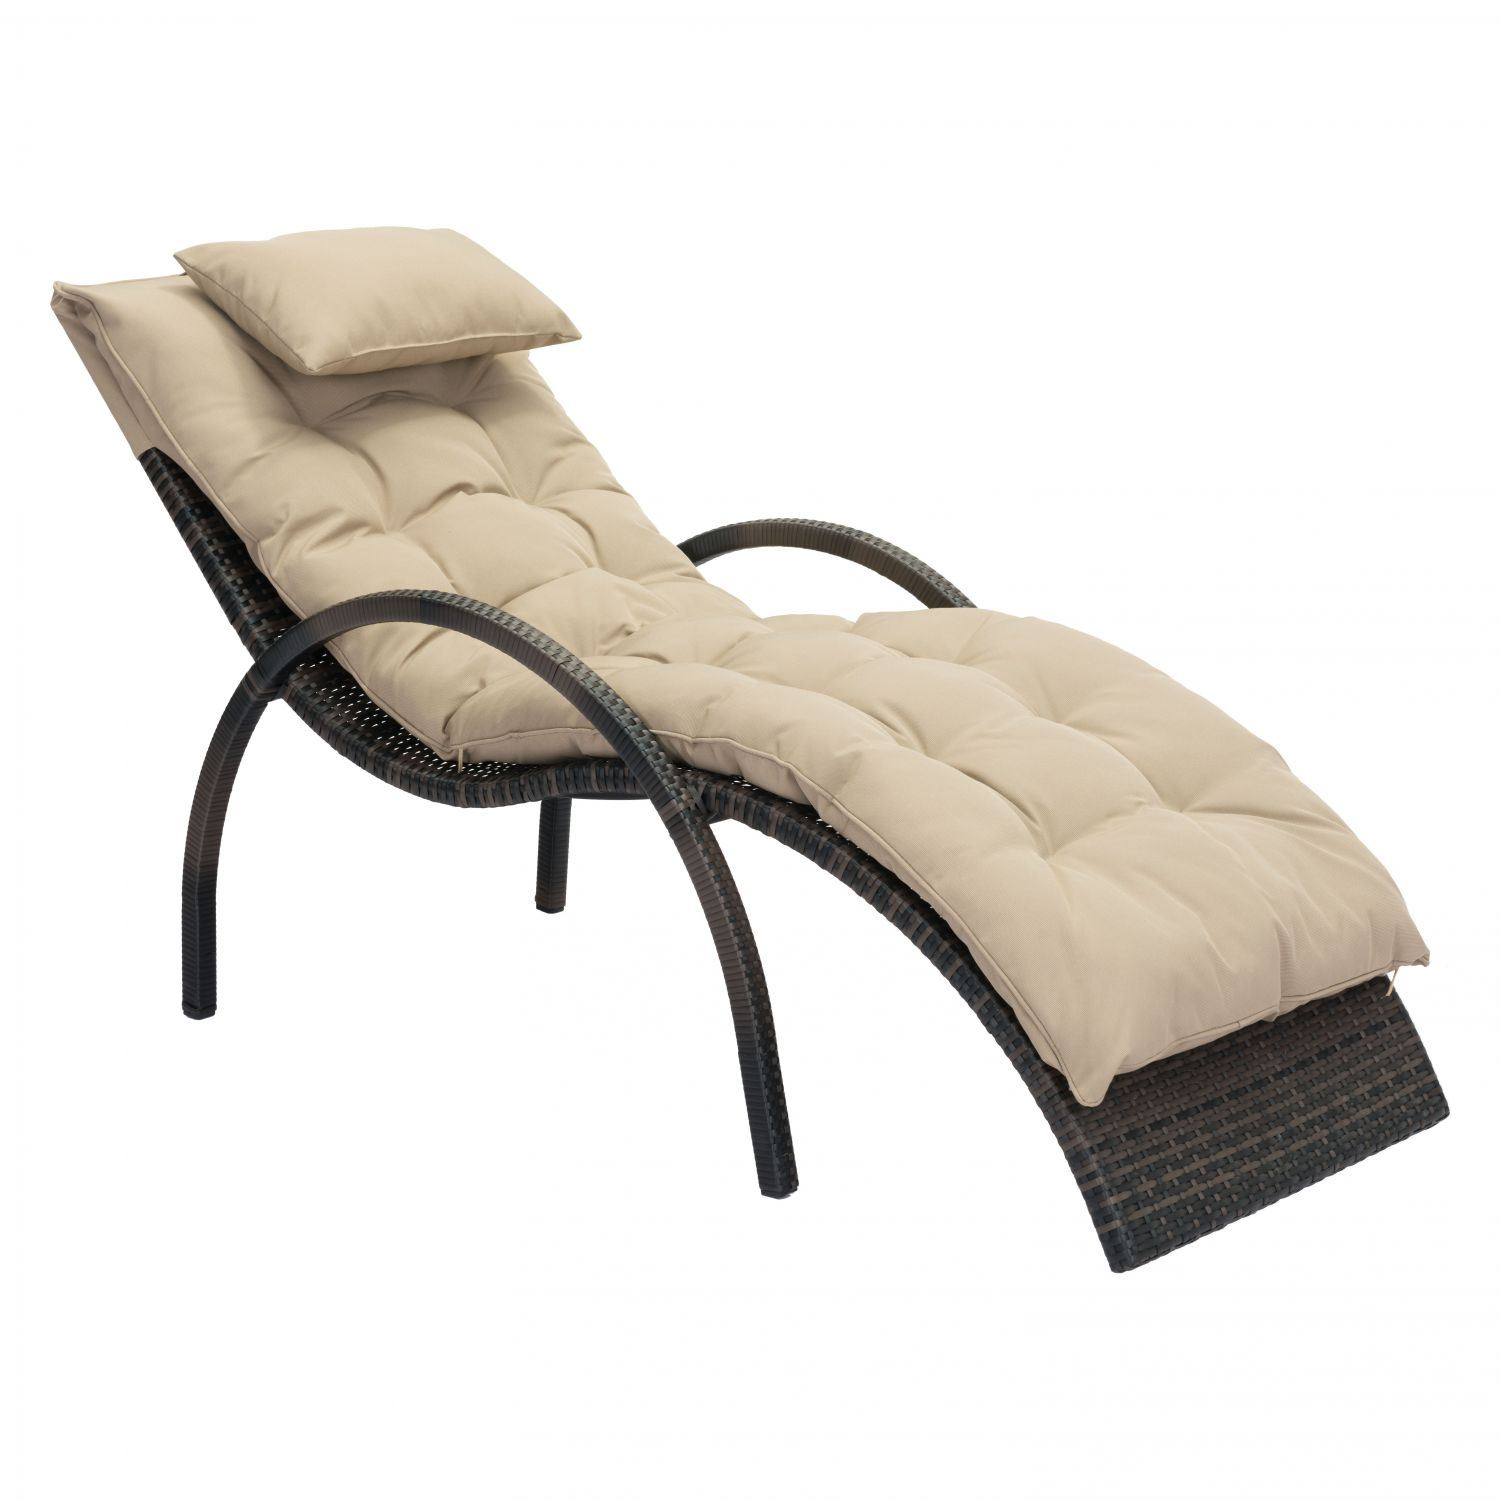 Eggertz beach chaise lounge brown beige 703841 zuo for Chaise lounge contemporary